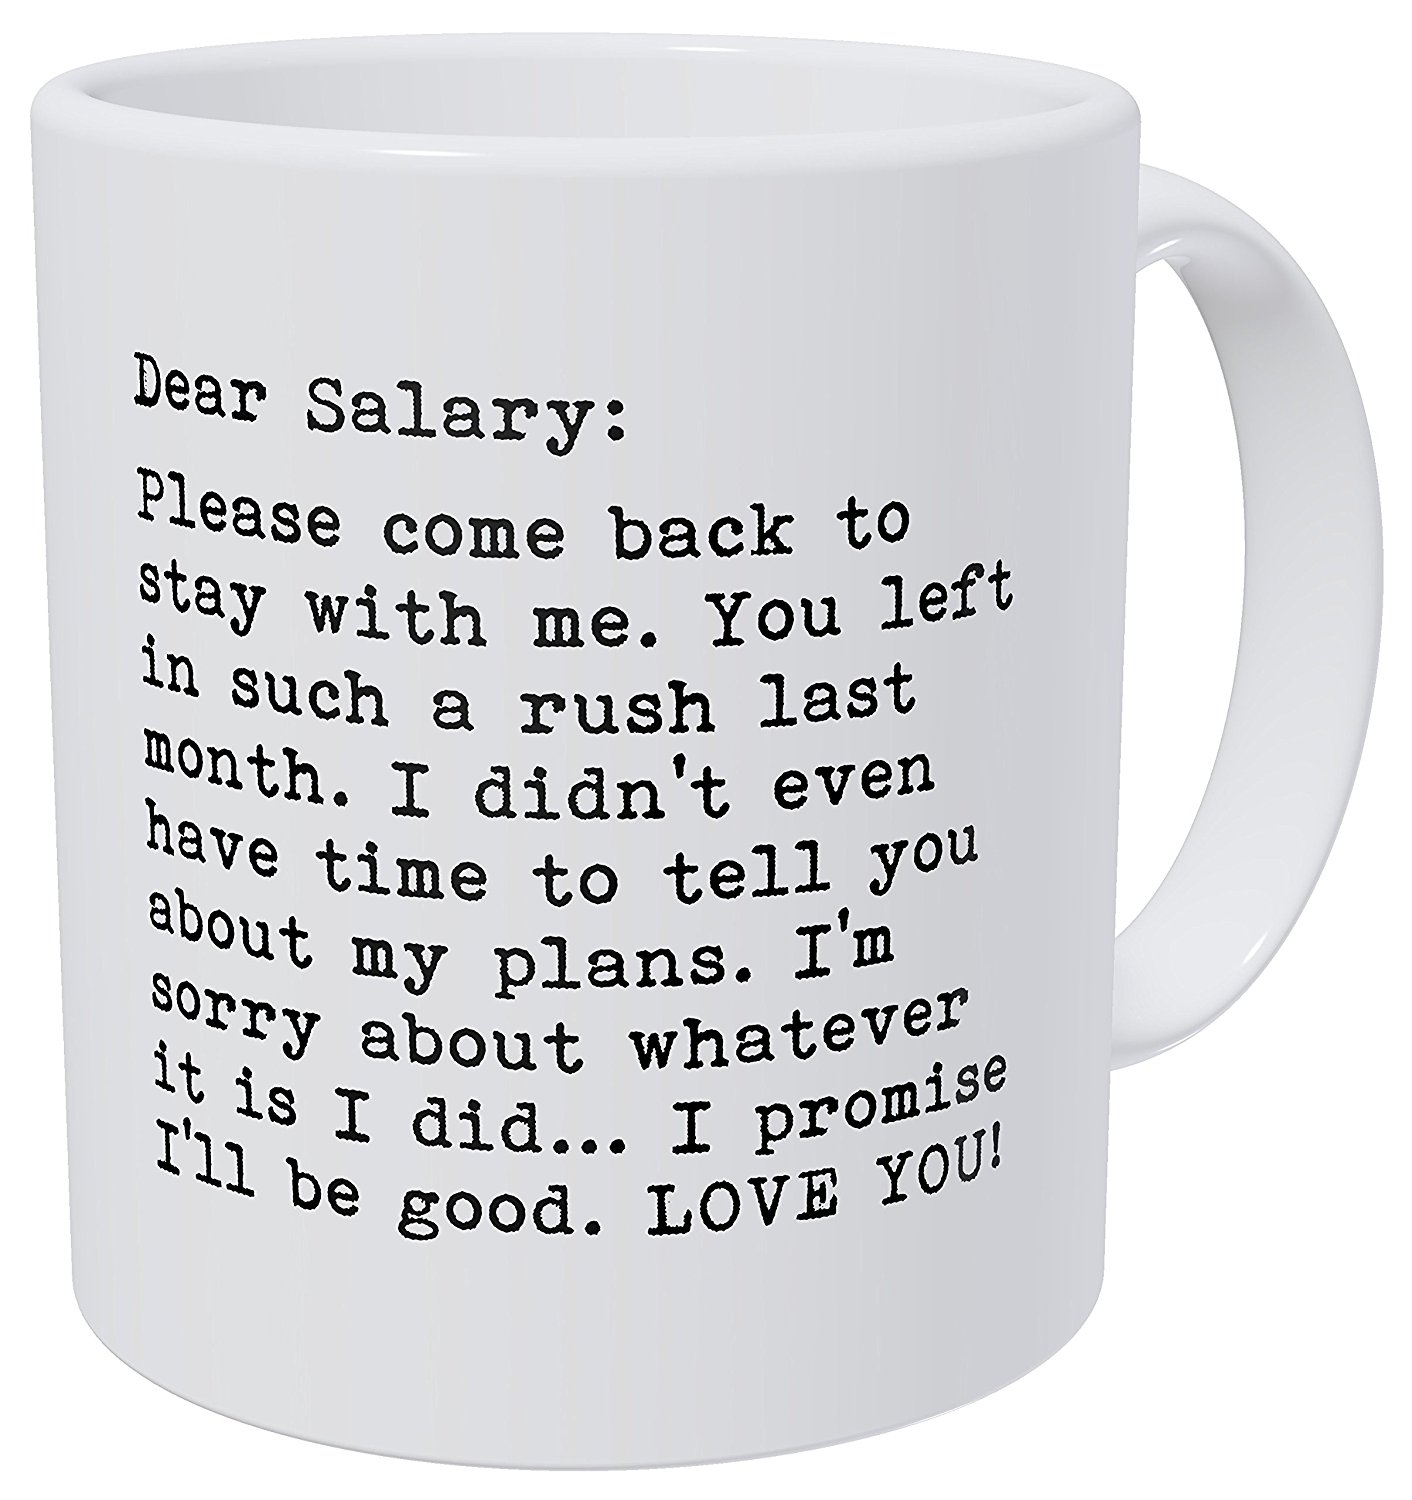 Funny Work Mugs Us 4 98 Wampumtuk Dear Salary Please Come Back Job Work 11 Ounces Funny Coffee Mug With Stirring Spoon In Mugs From Home Garden On